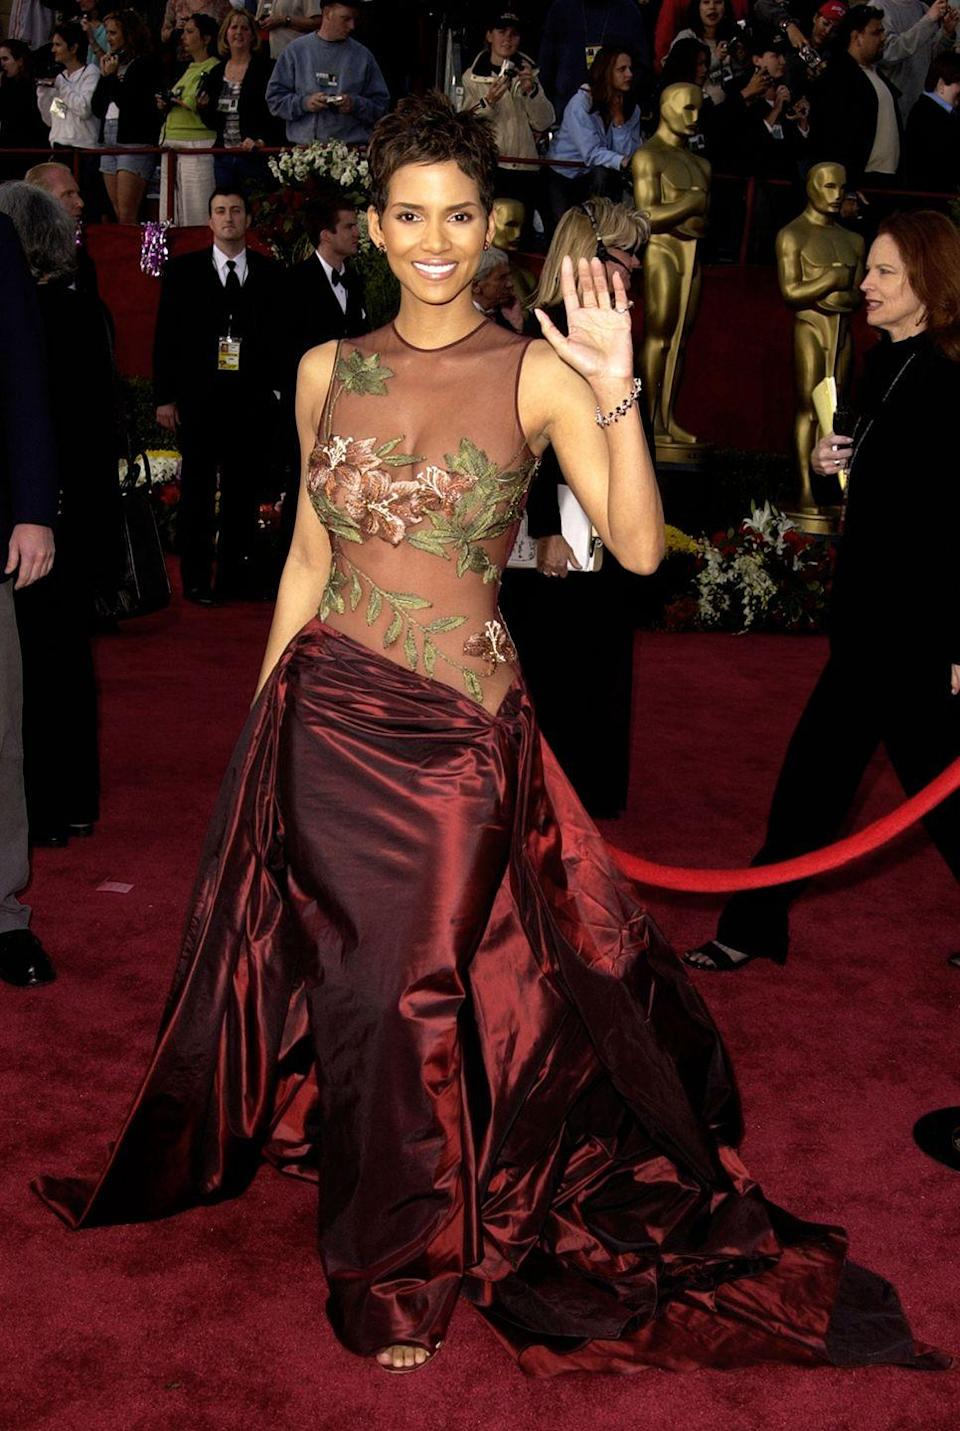 <p>You can't think of the 2002 Academy Awards without also envisioning this Elie Saab dress on Halle Berry. It remains one of the actress's most iconic looks of all time thanks to the completely see-through bodice and the strategically-placed floral embroidery. </p>